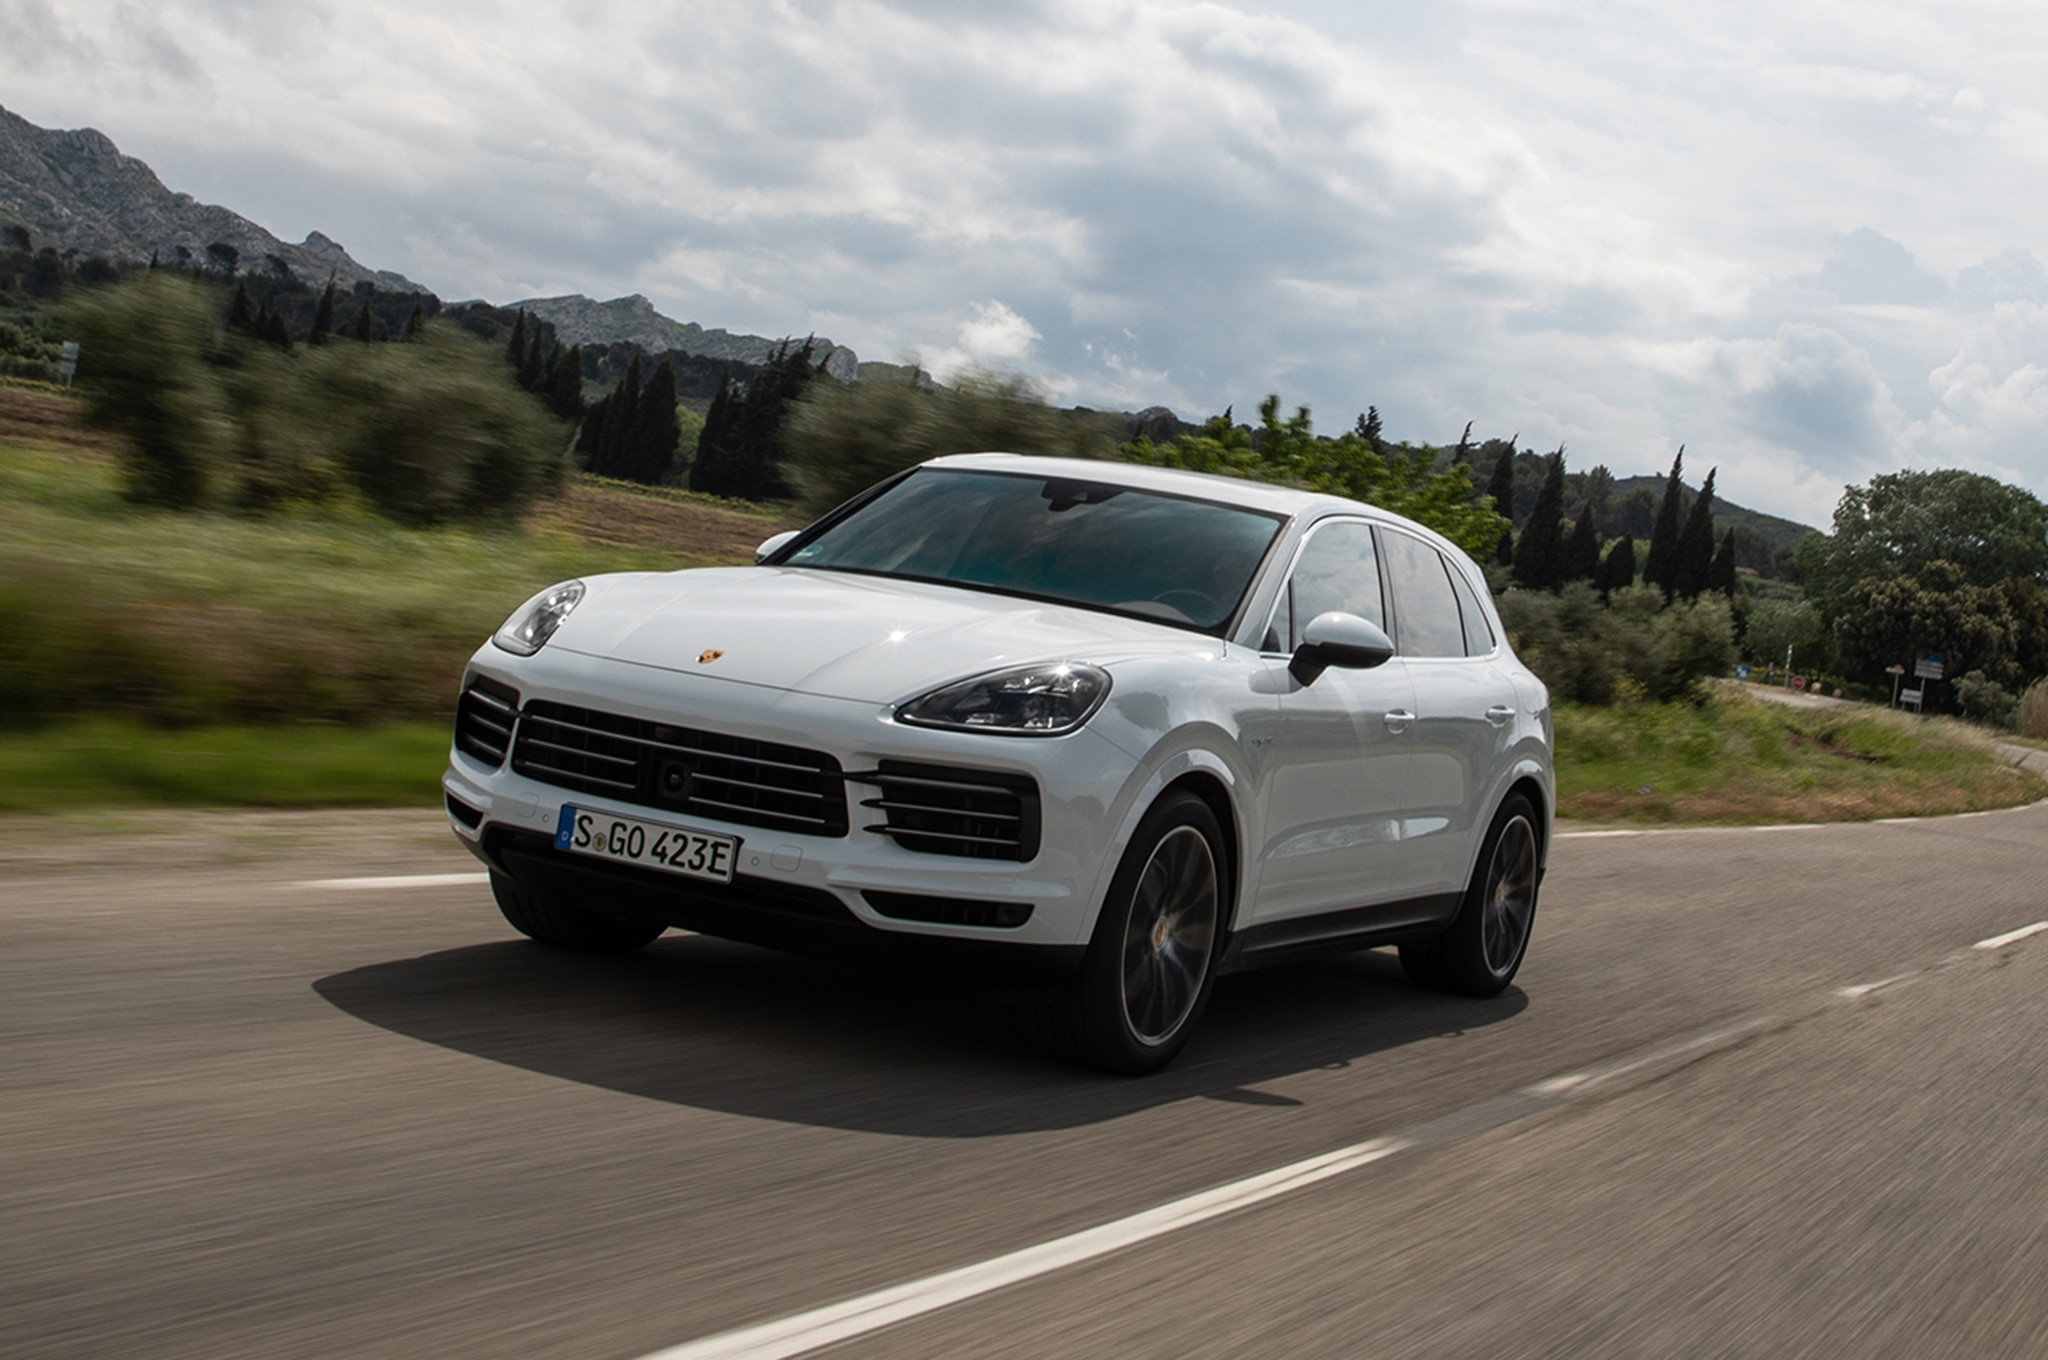 2019 Porsche Cayenne E Hybrid Front Three Quarter In Motion 05